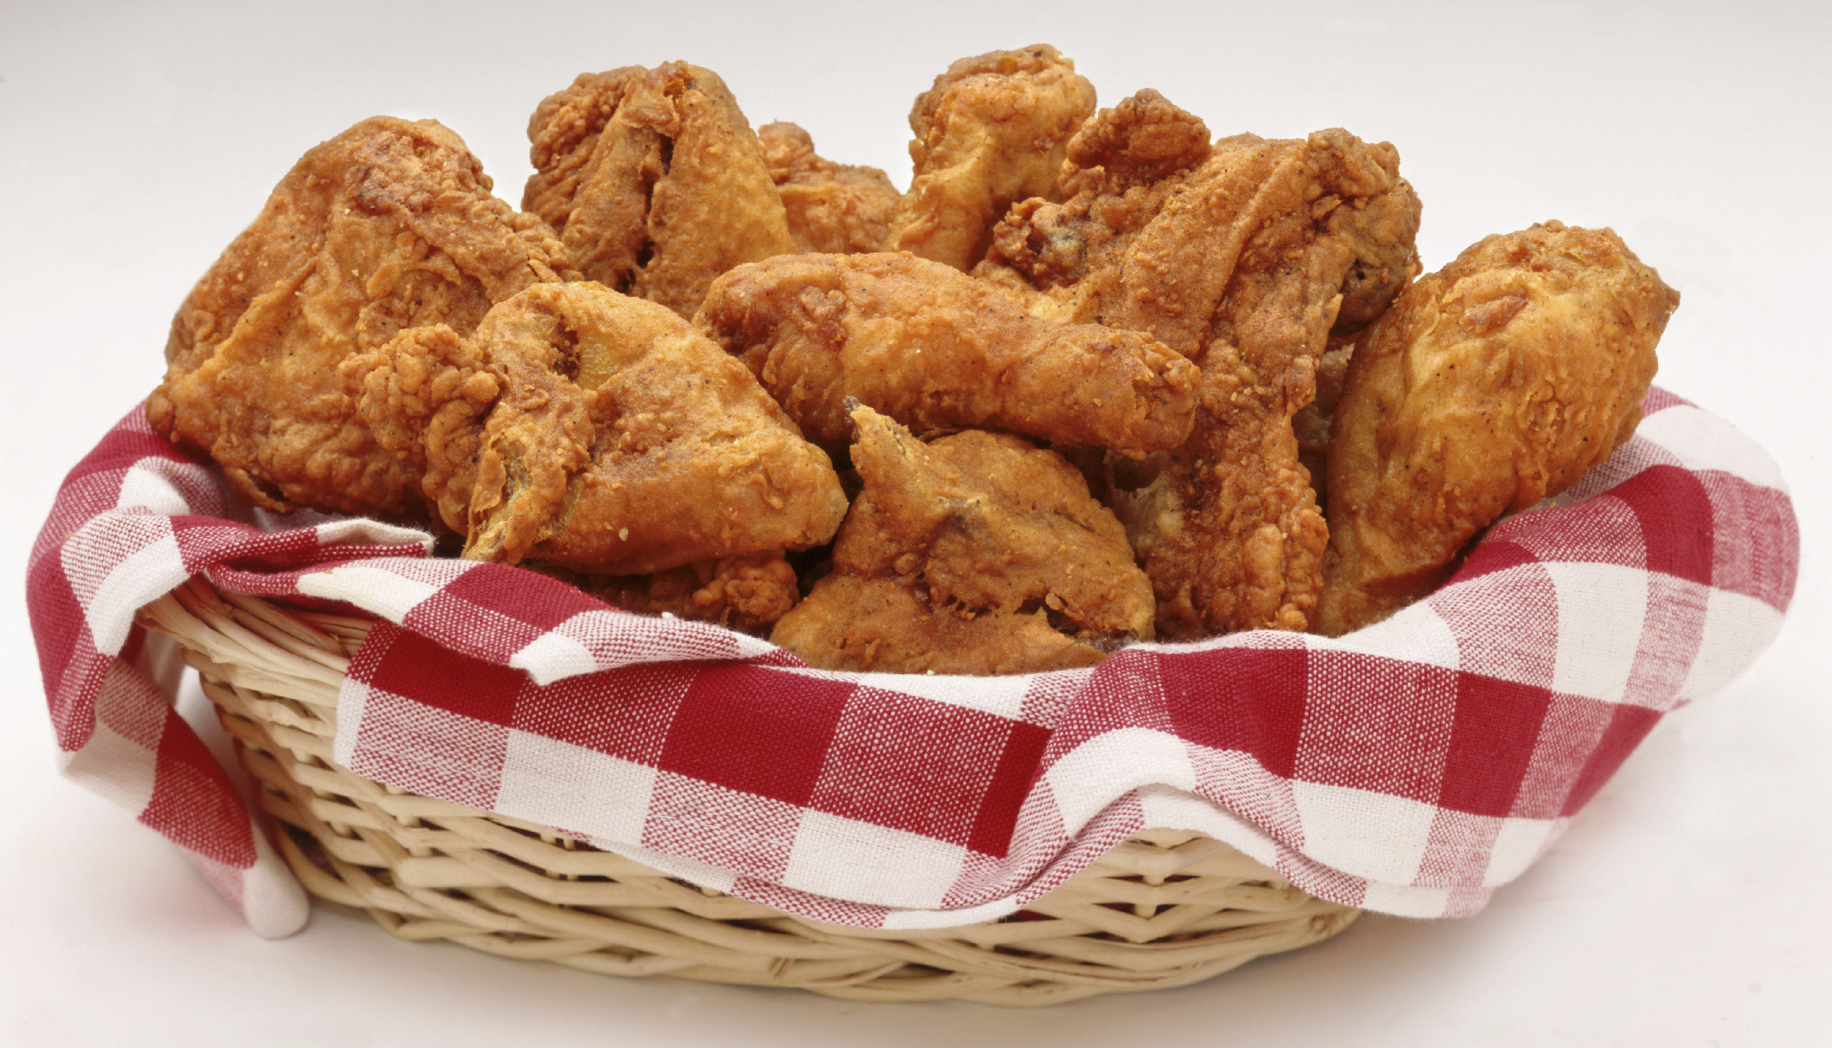 Inspirational Story – FRIED CHICKEN